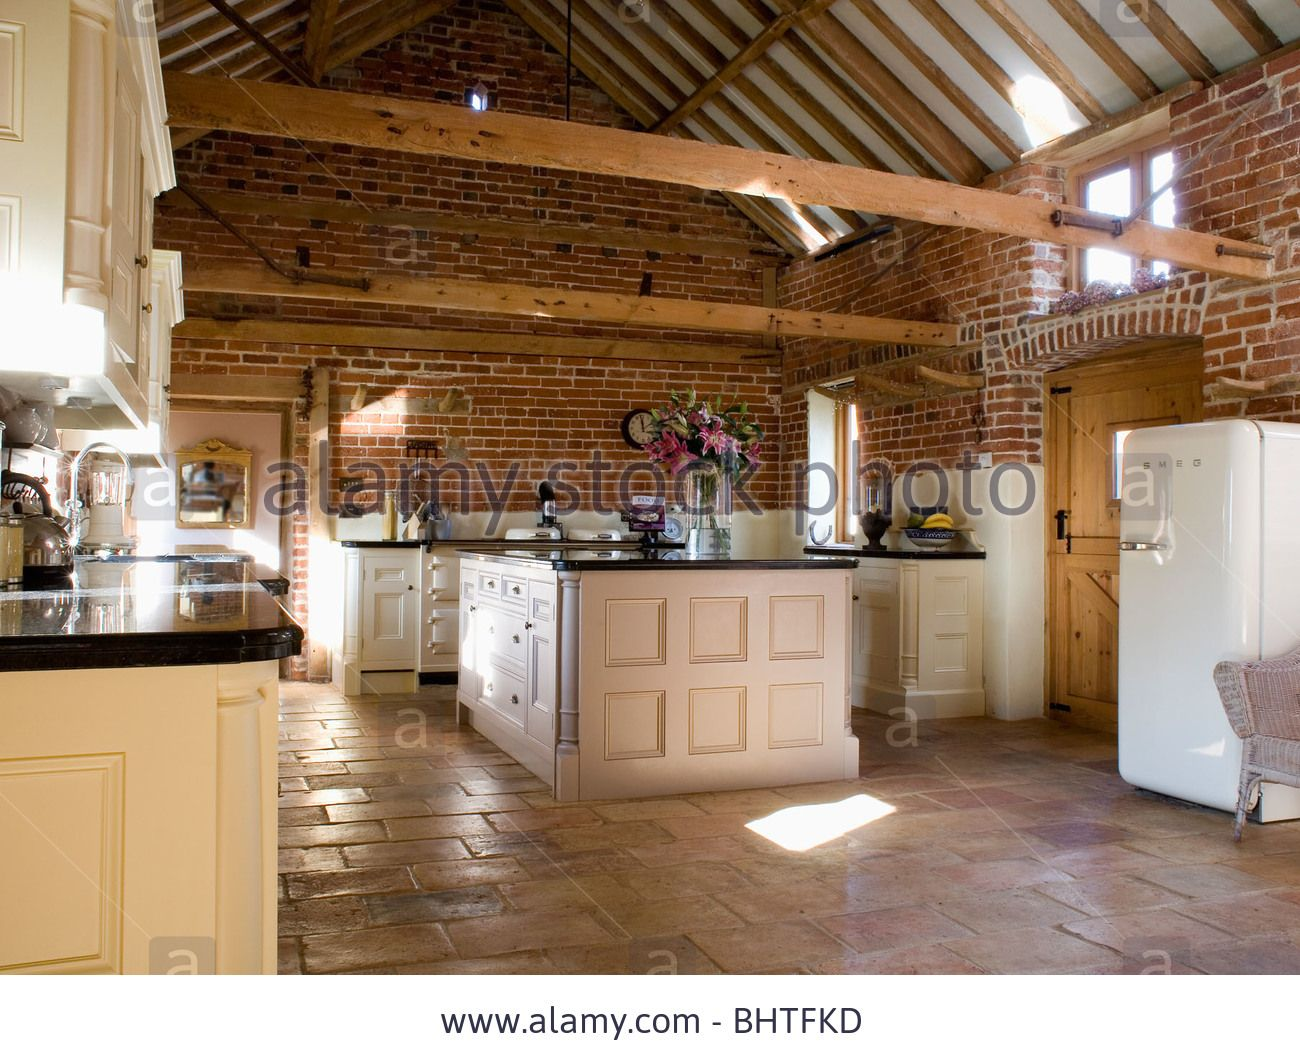 Barn Conversion Kitchen   Google Search